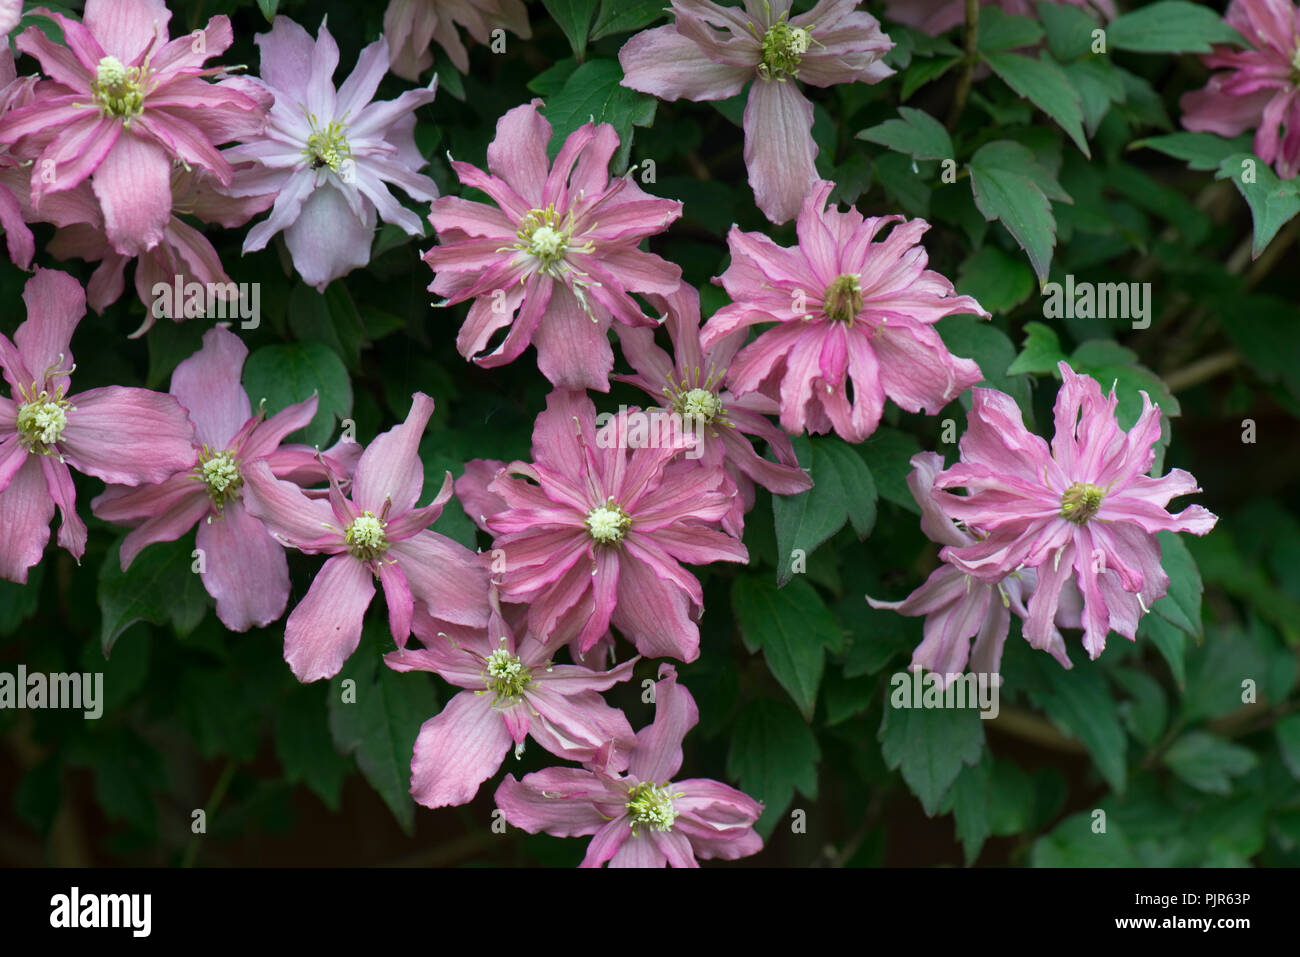 Clematis Montana Broughton Star A Double Pink Flowered Climbing